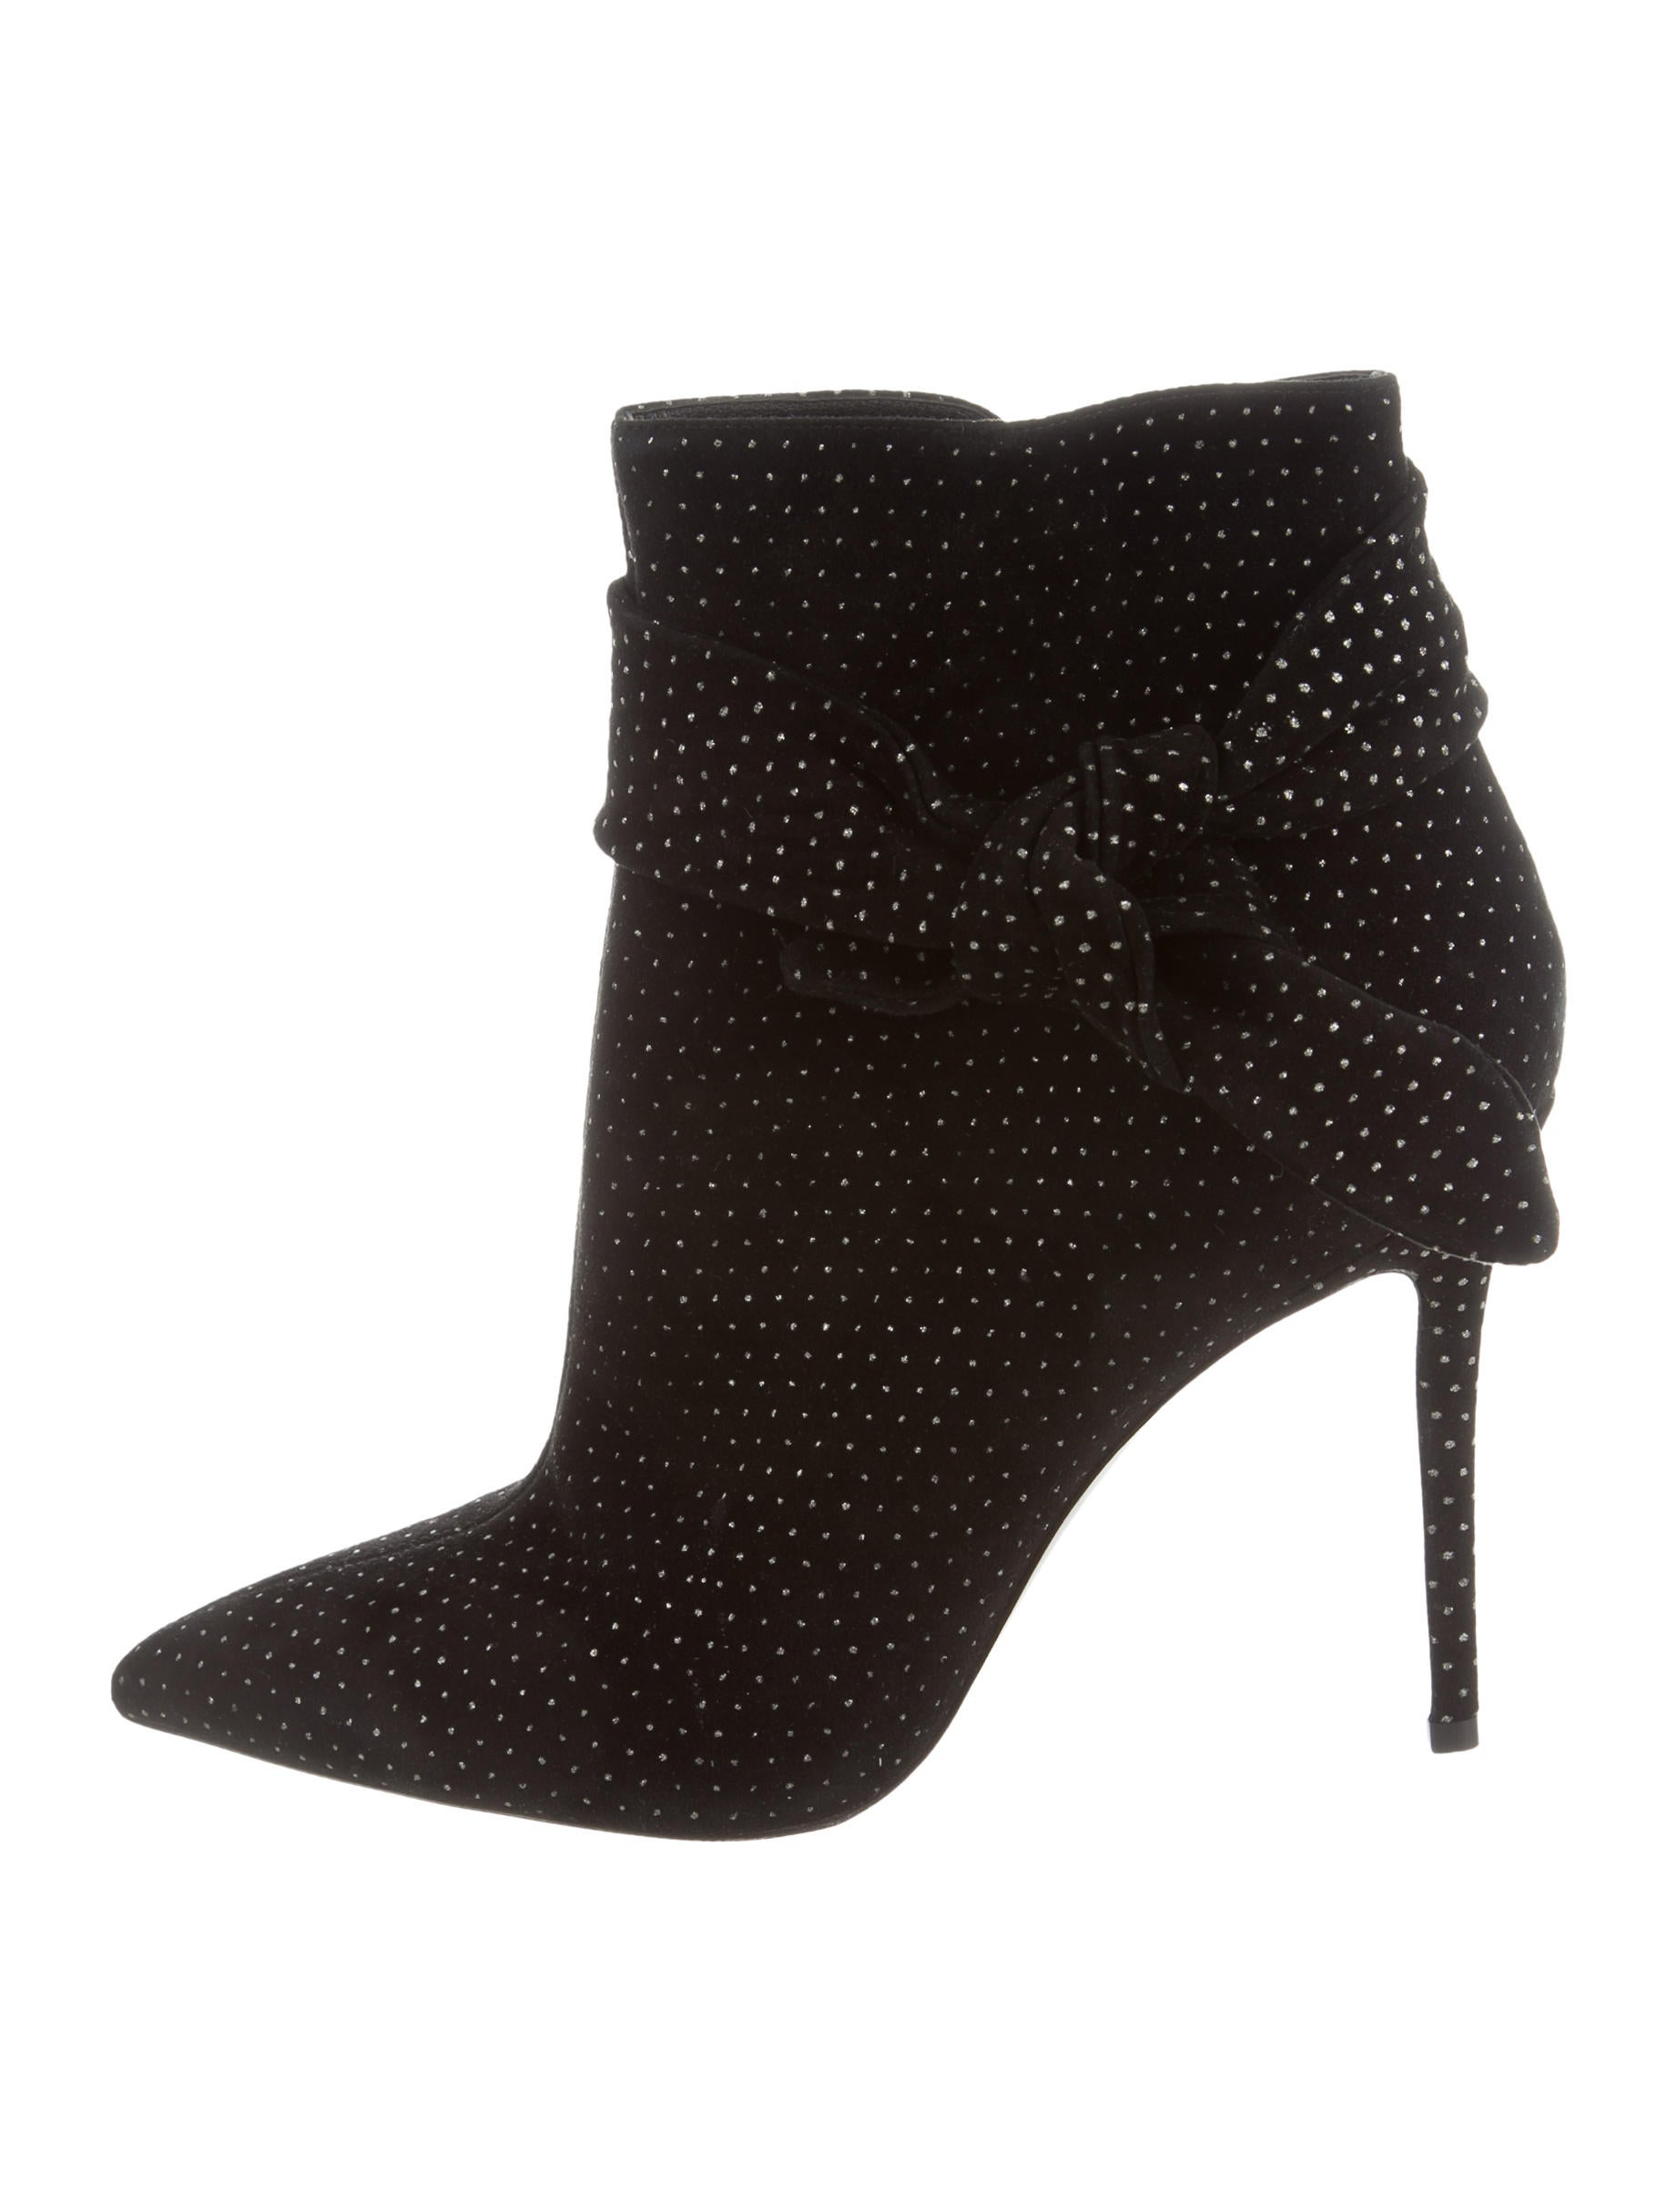 discount brand new unisex Stella Luna Polka Dot Bow Ankle Boots sale cheapest price 4xgKo1jFs